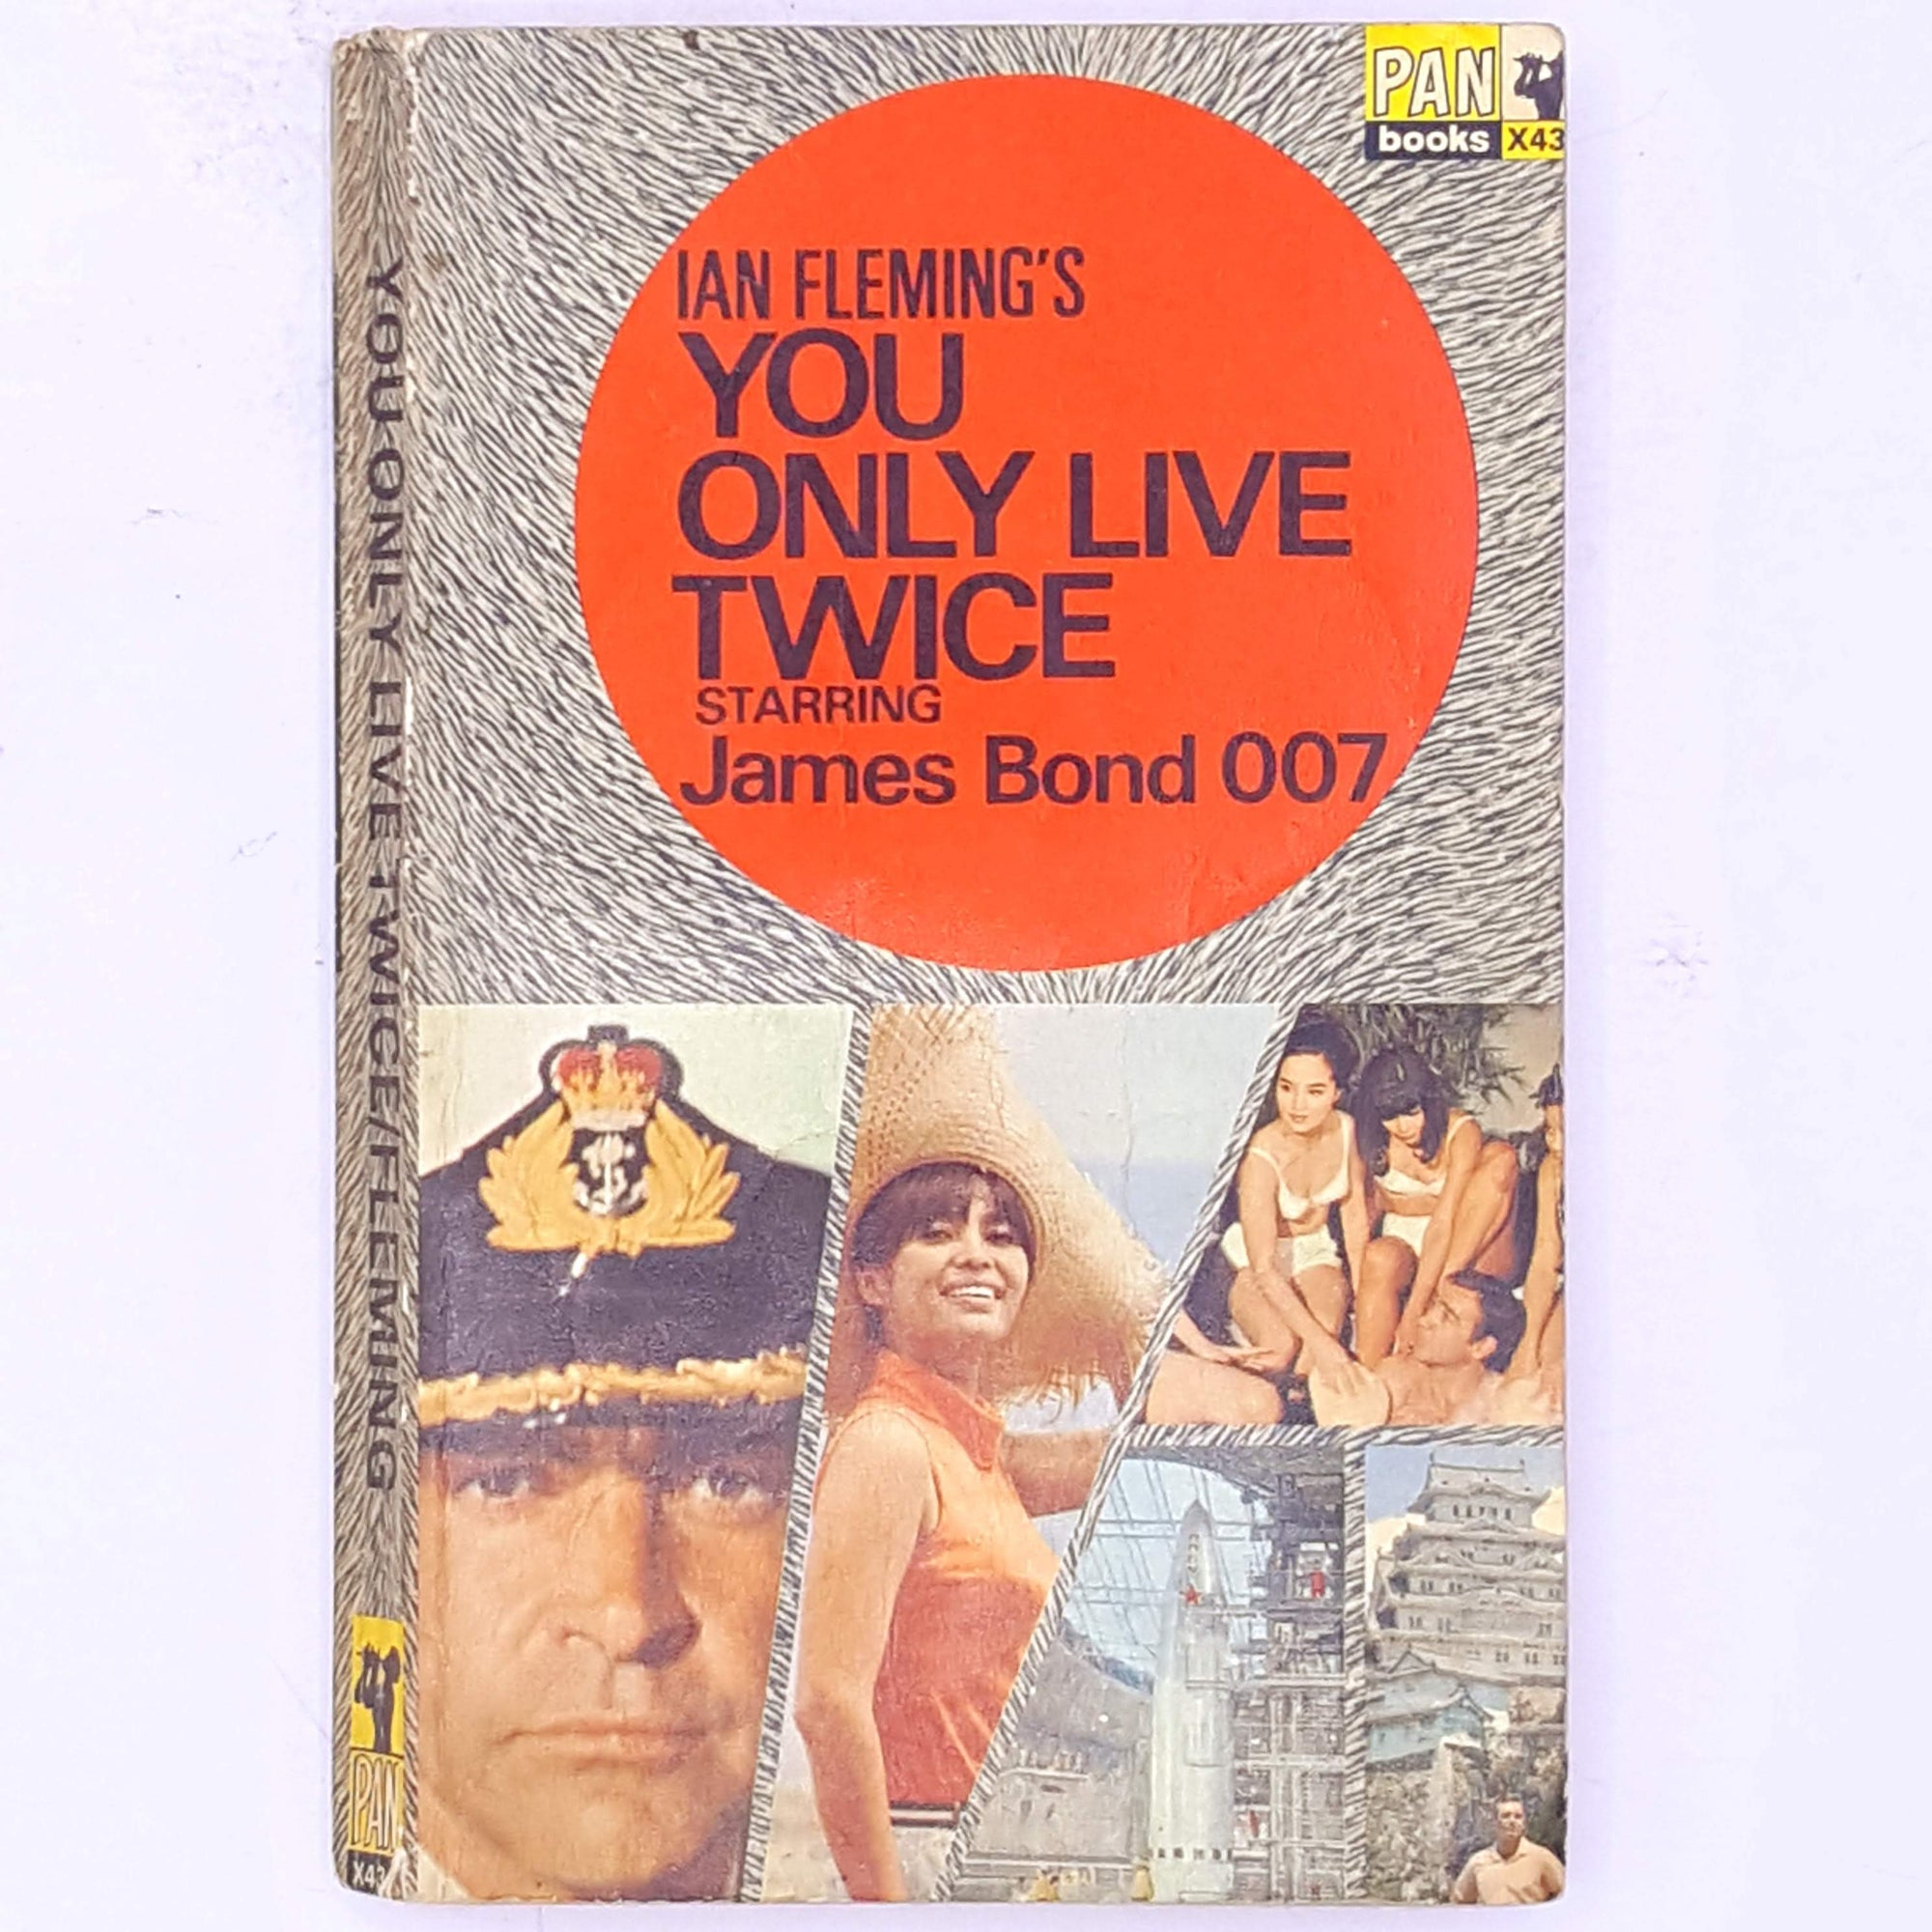 decorative-you-only-live-twice-James-Bond-007-secret-agent-vintage-classic-old-spy-ian-fleming-mystery-books-thrift-patterned-country-house-library-antique-